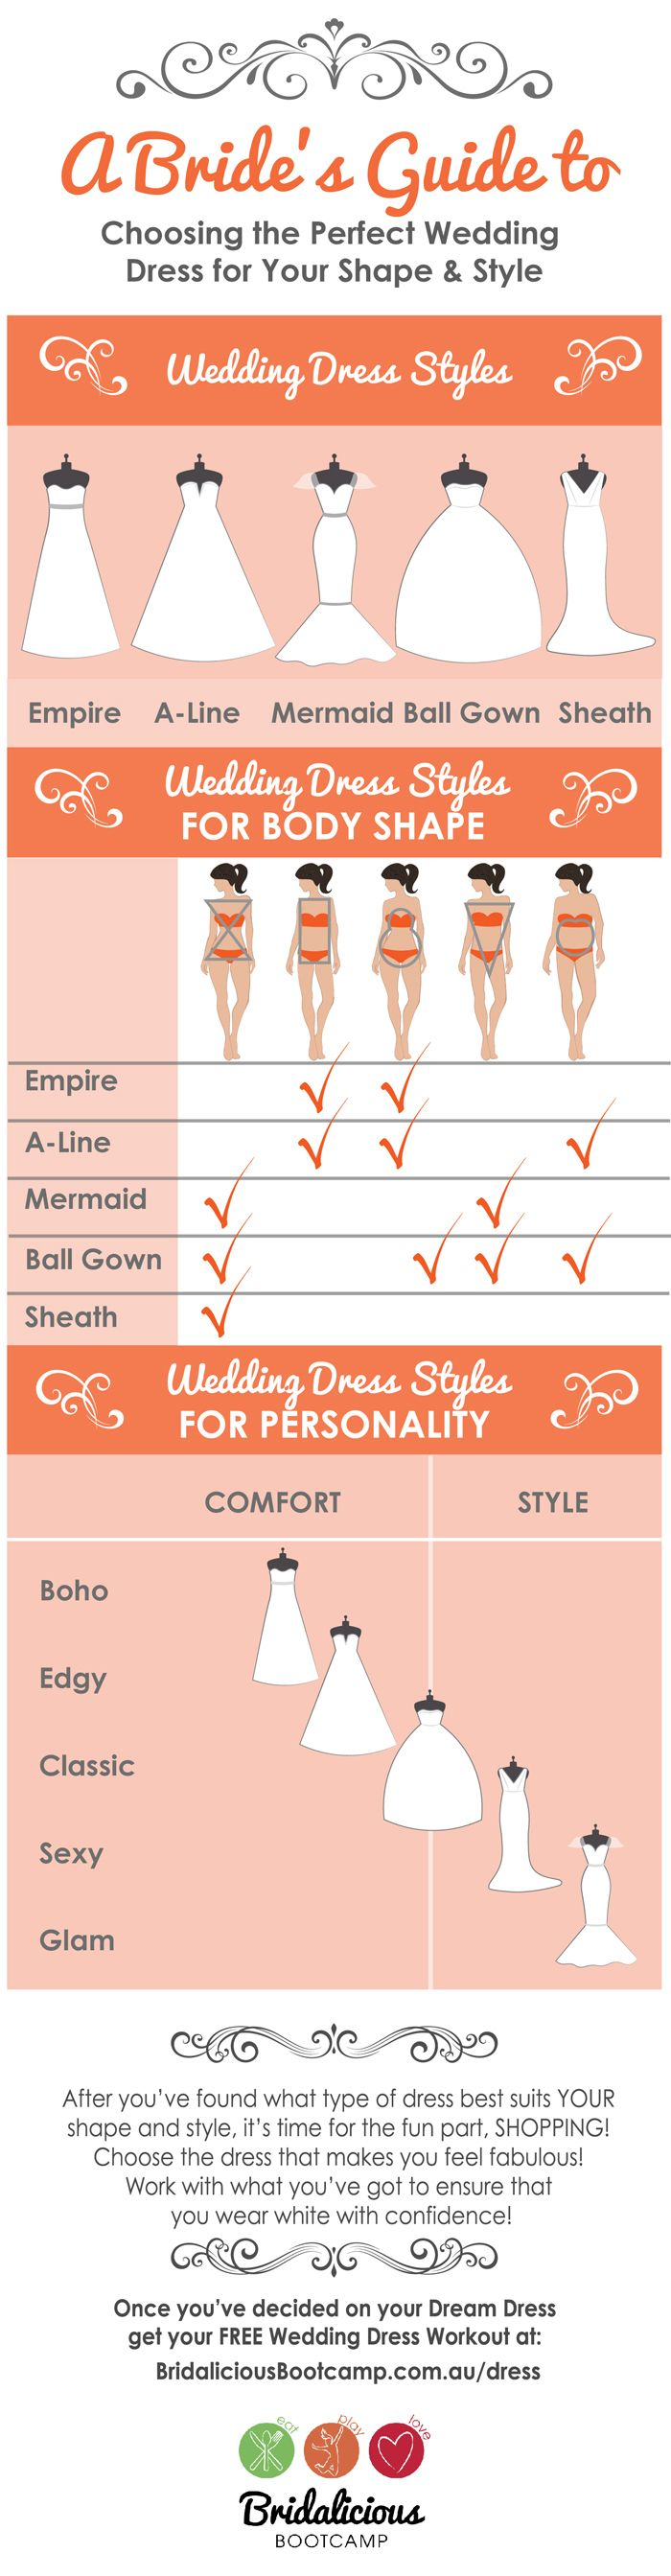 How to Choose the Perfect Wedding Dress for Your Body Type